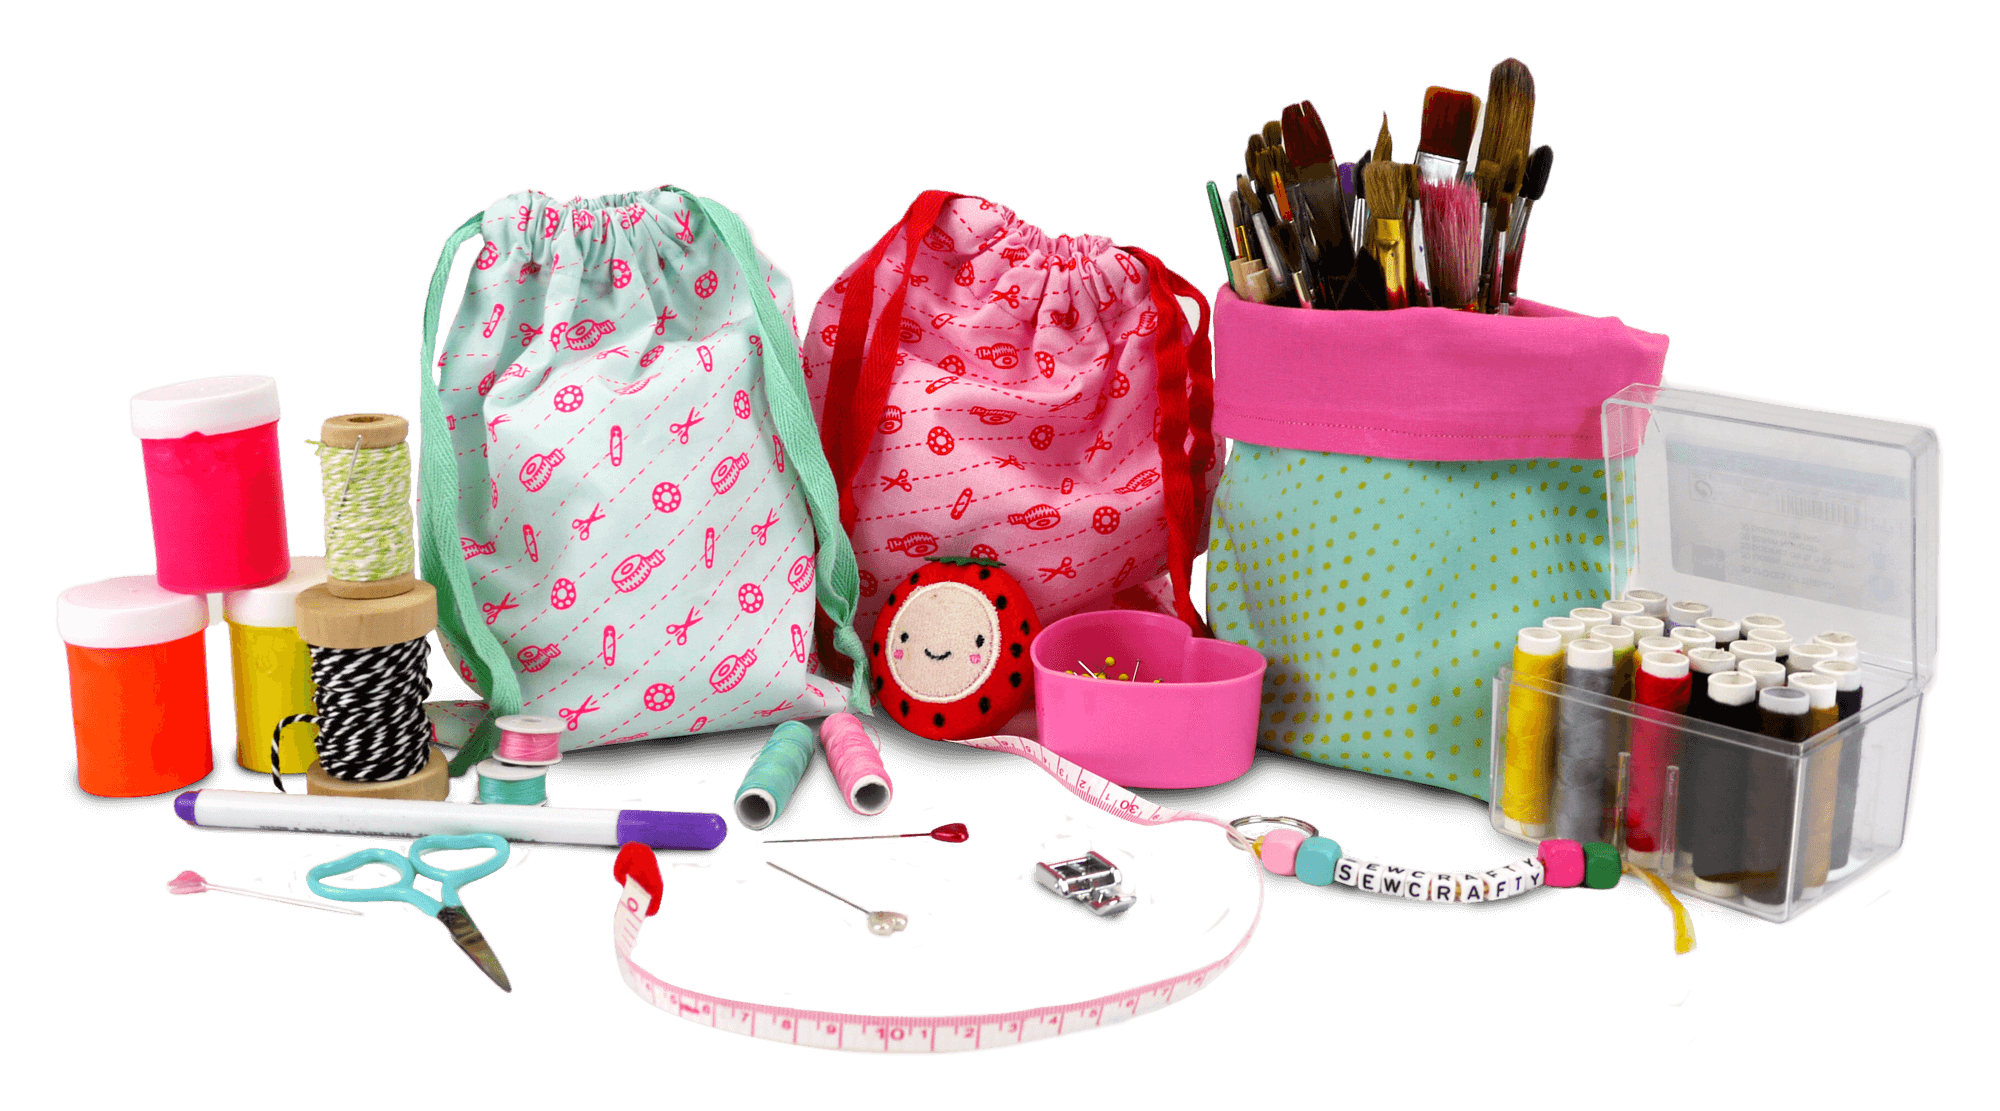 group shots of sew what products and sewing accessories